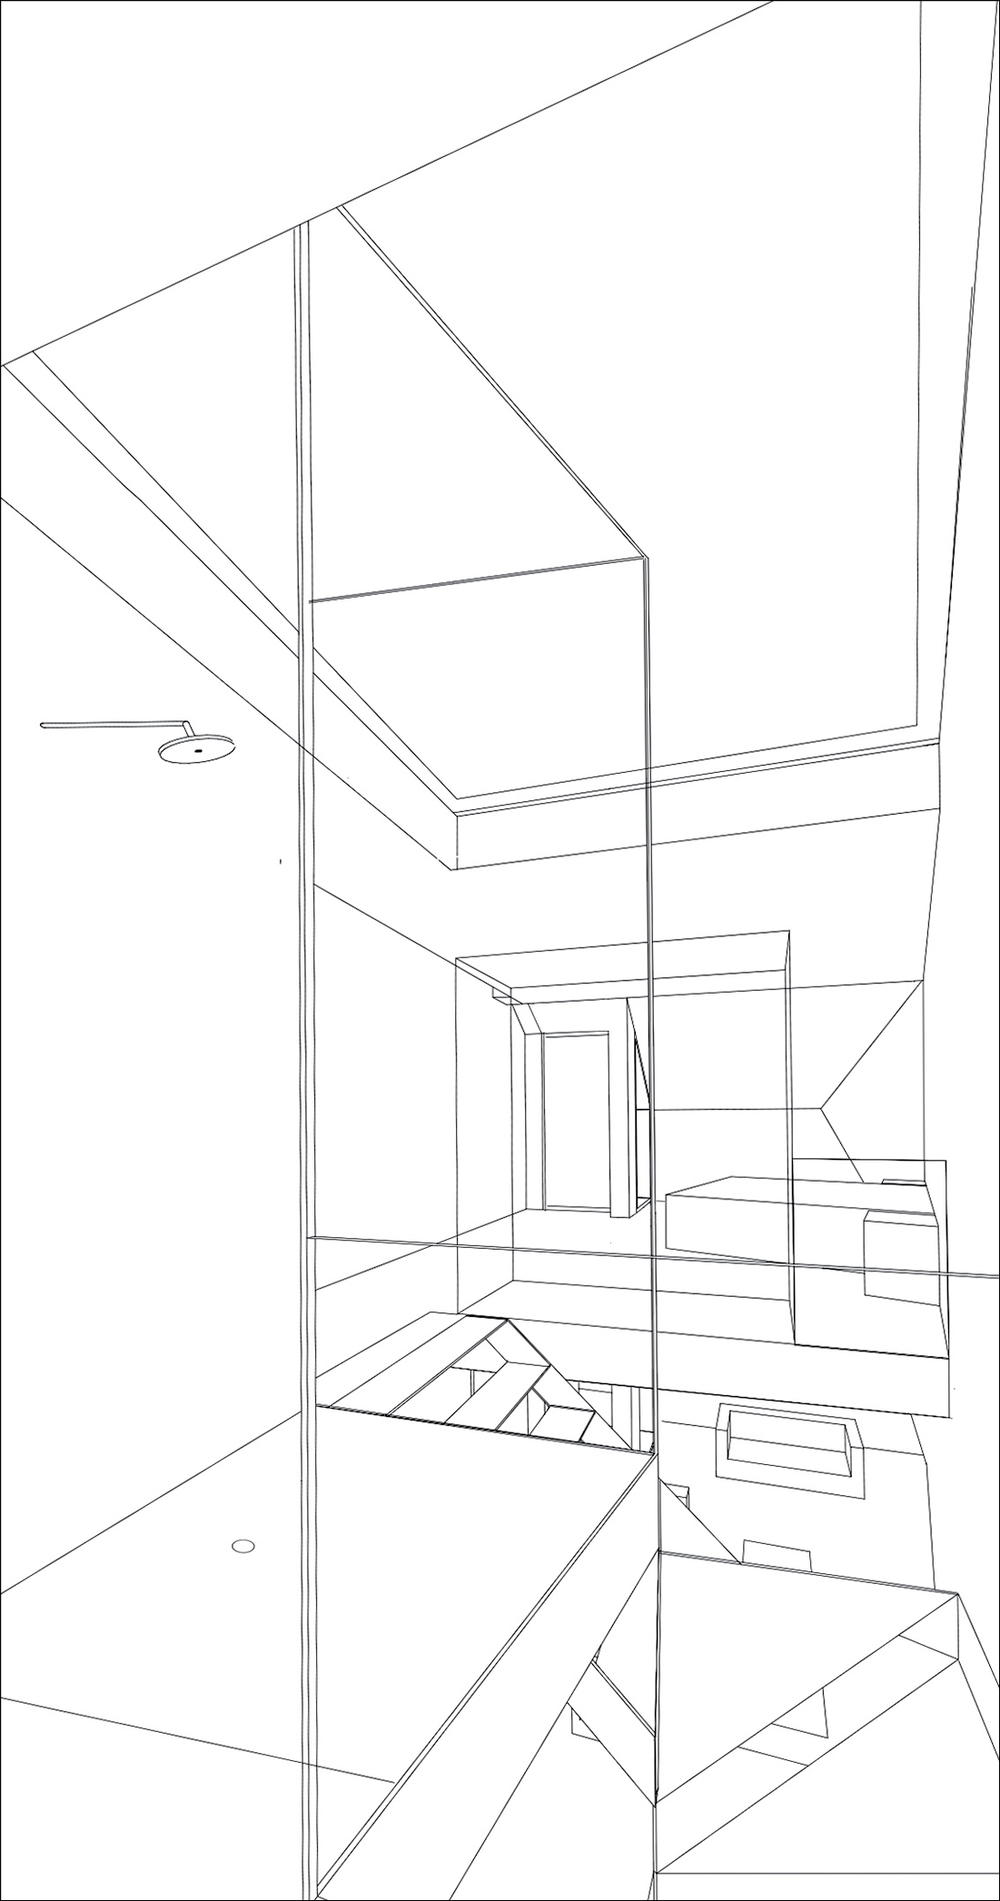 321 - Interiorview_2.png